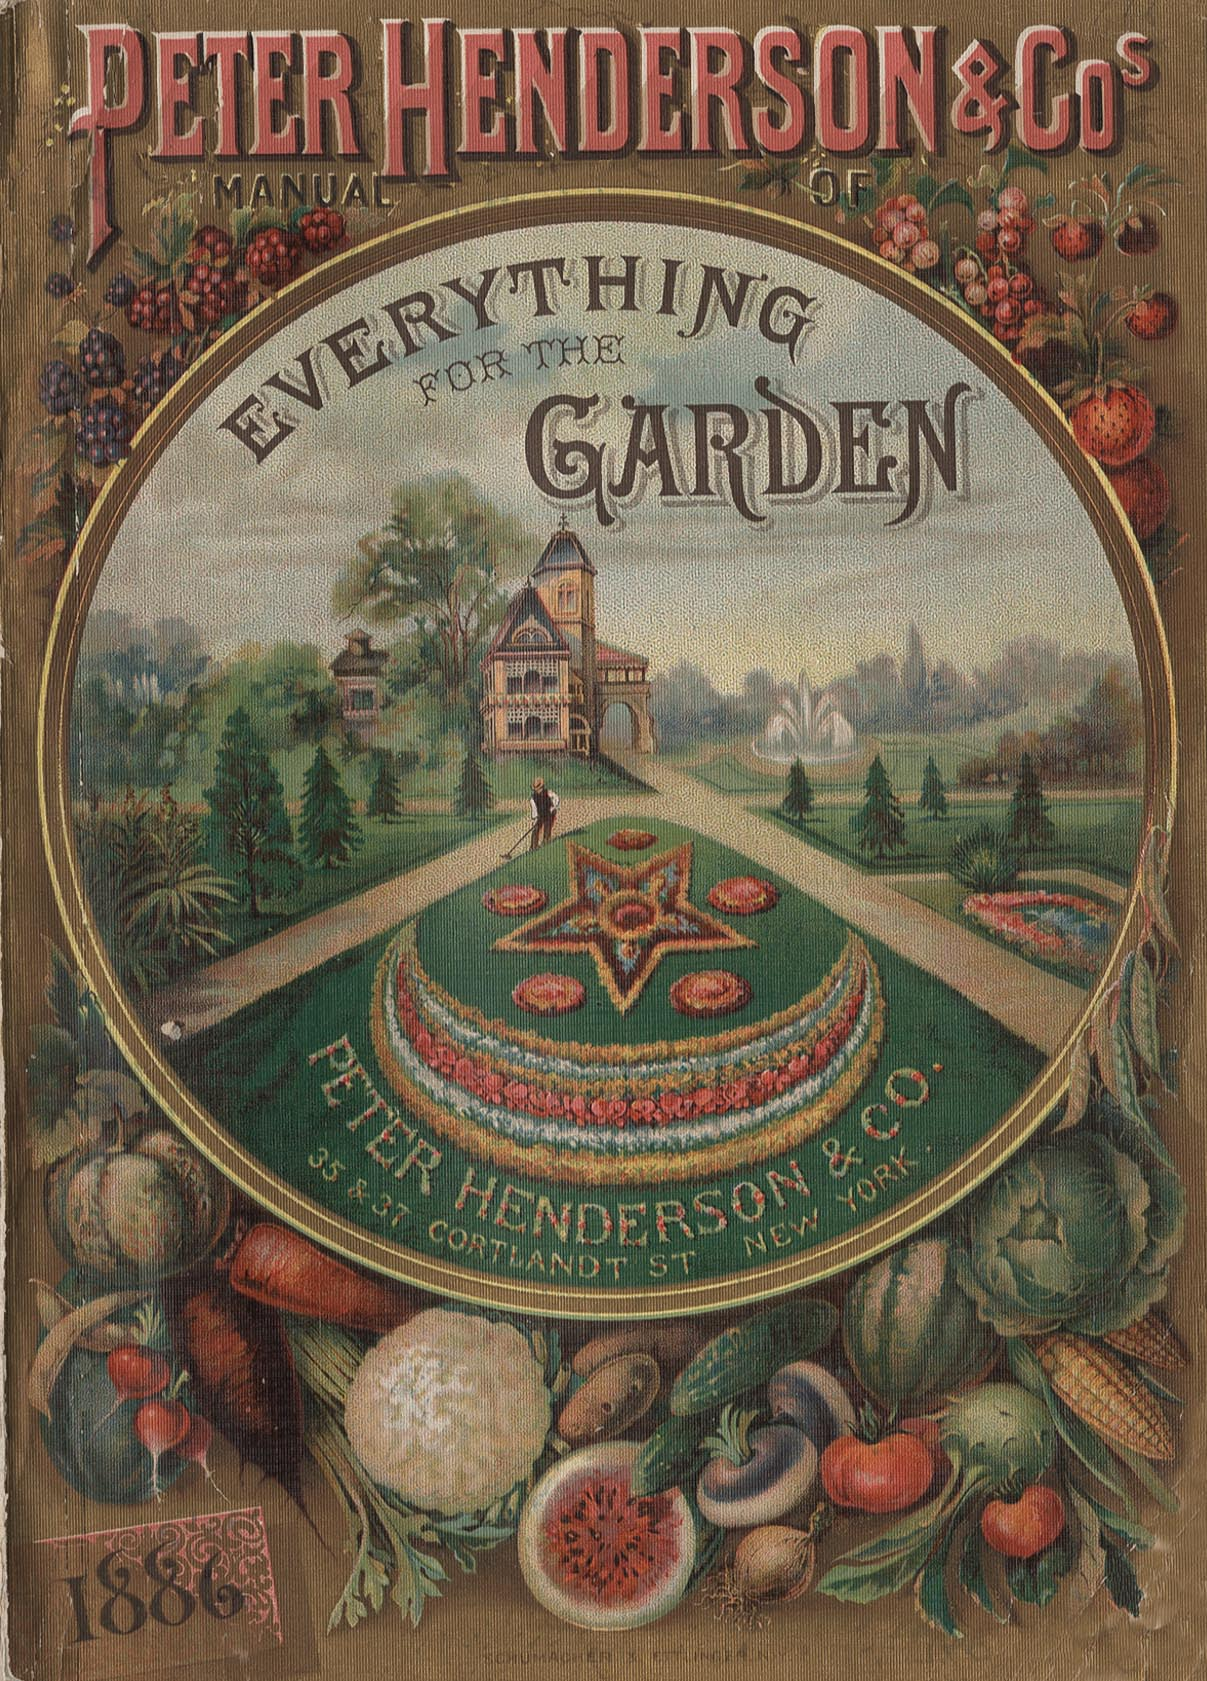 Bedding on the front cover of this Peter Henderson Company seed catalog